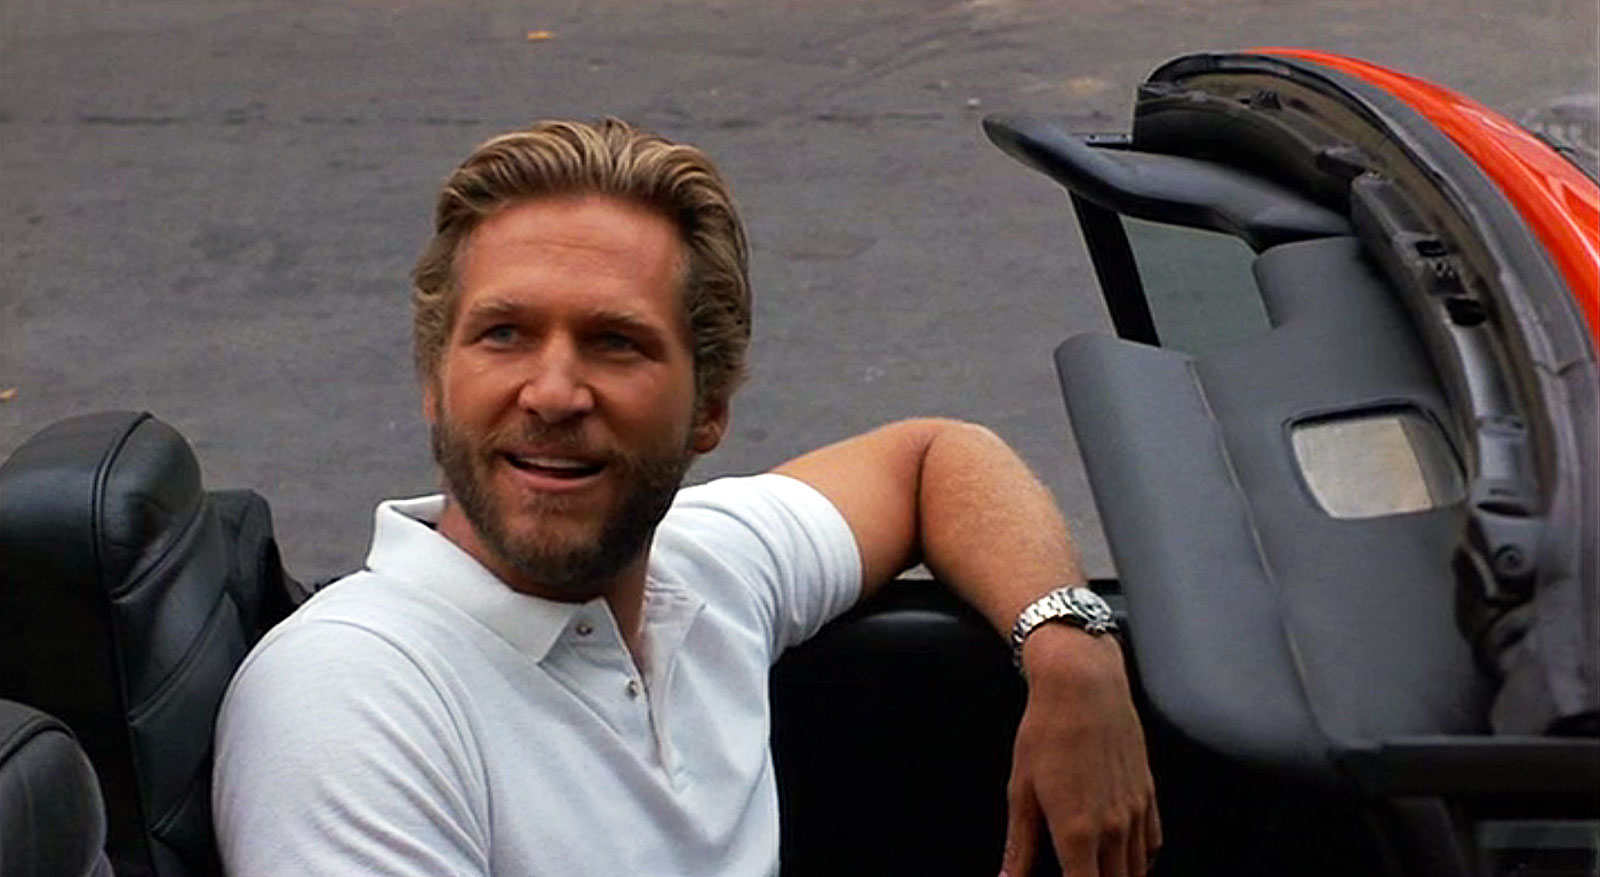 http://2.bp.blogspot.com/--kjtizQZ8f4/TWD2o4d05GI/AAAAAAAAJQg/sB89FqYfNa8/s1600/Jeff-Bridges-Rolex-Against-All-Odds.jpg